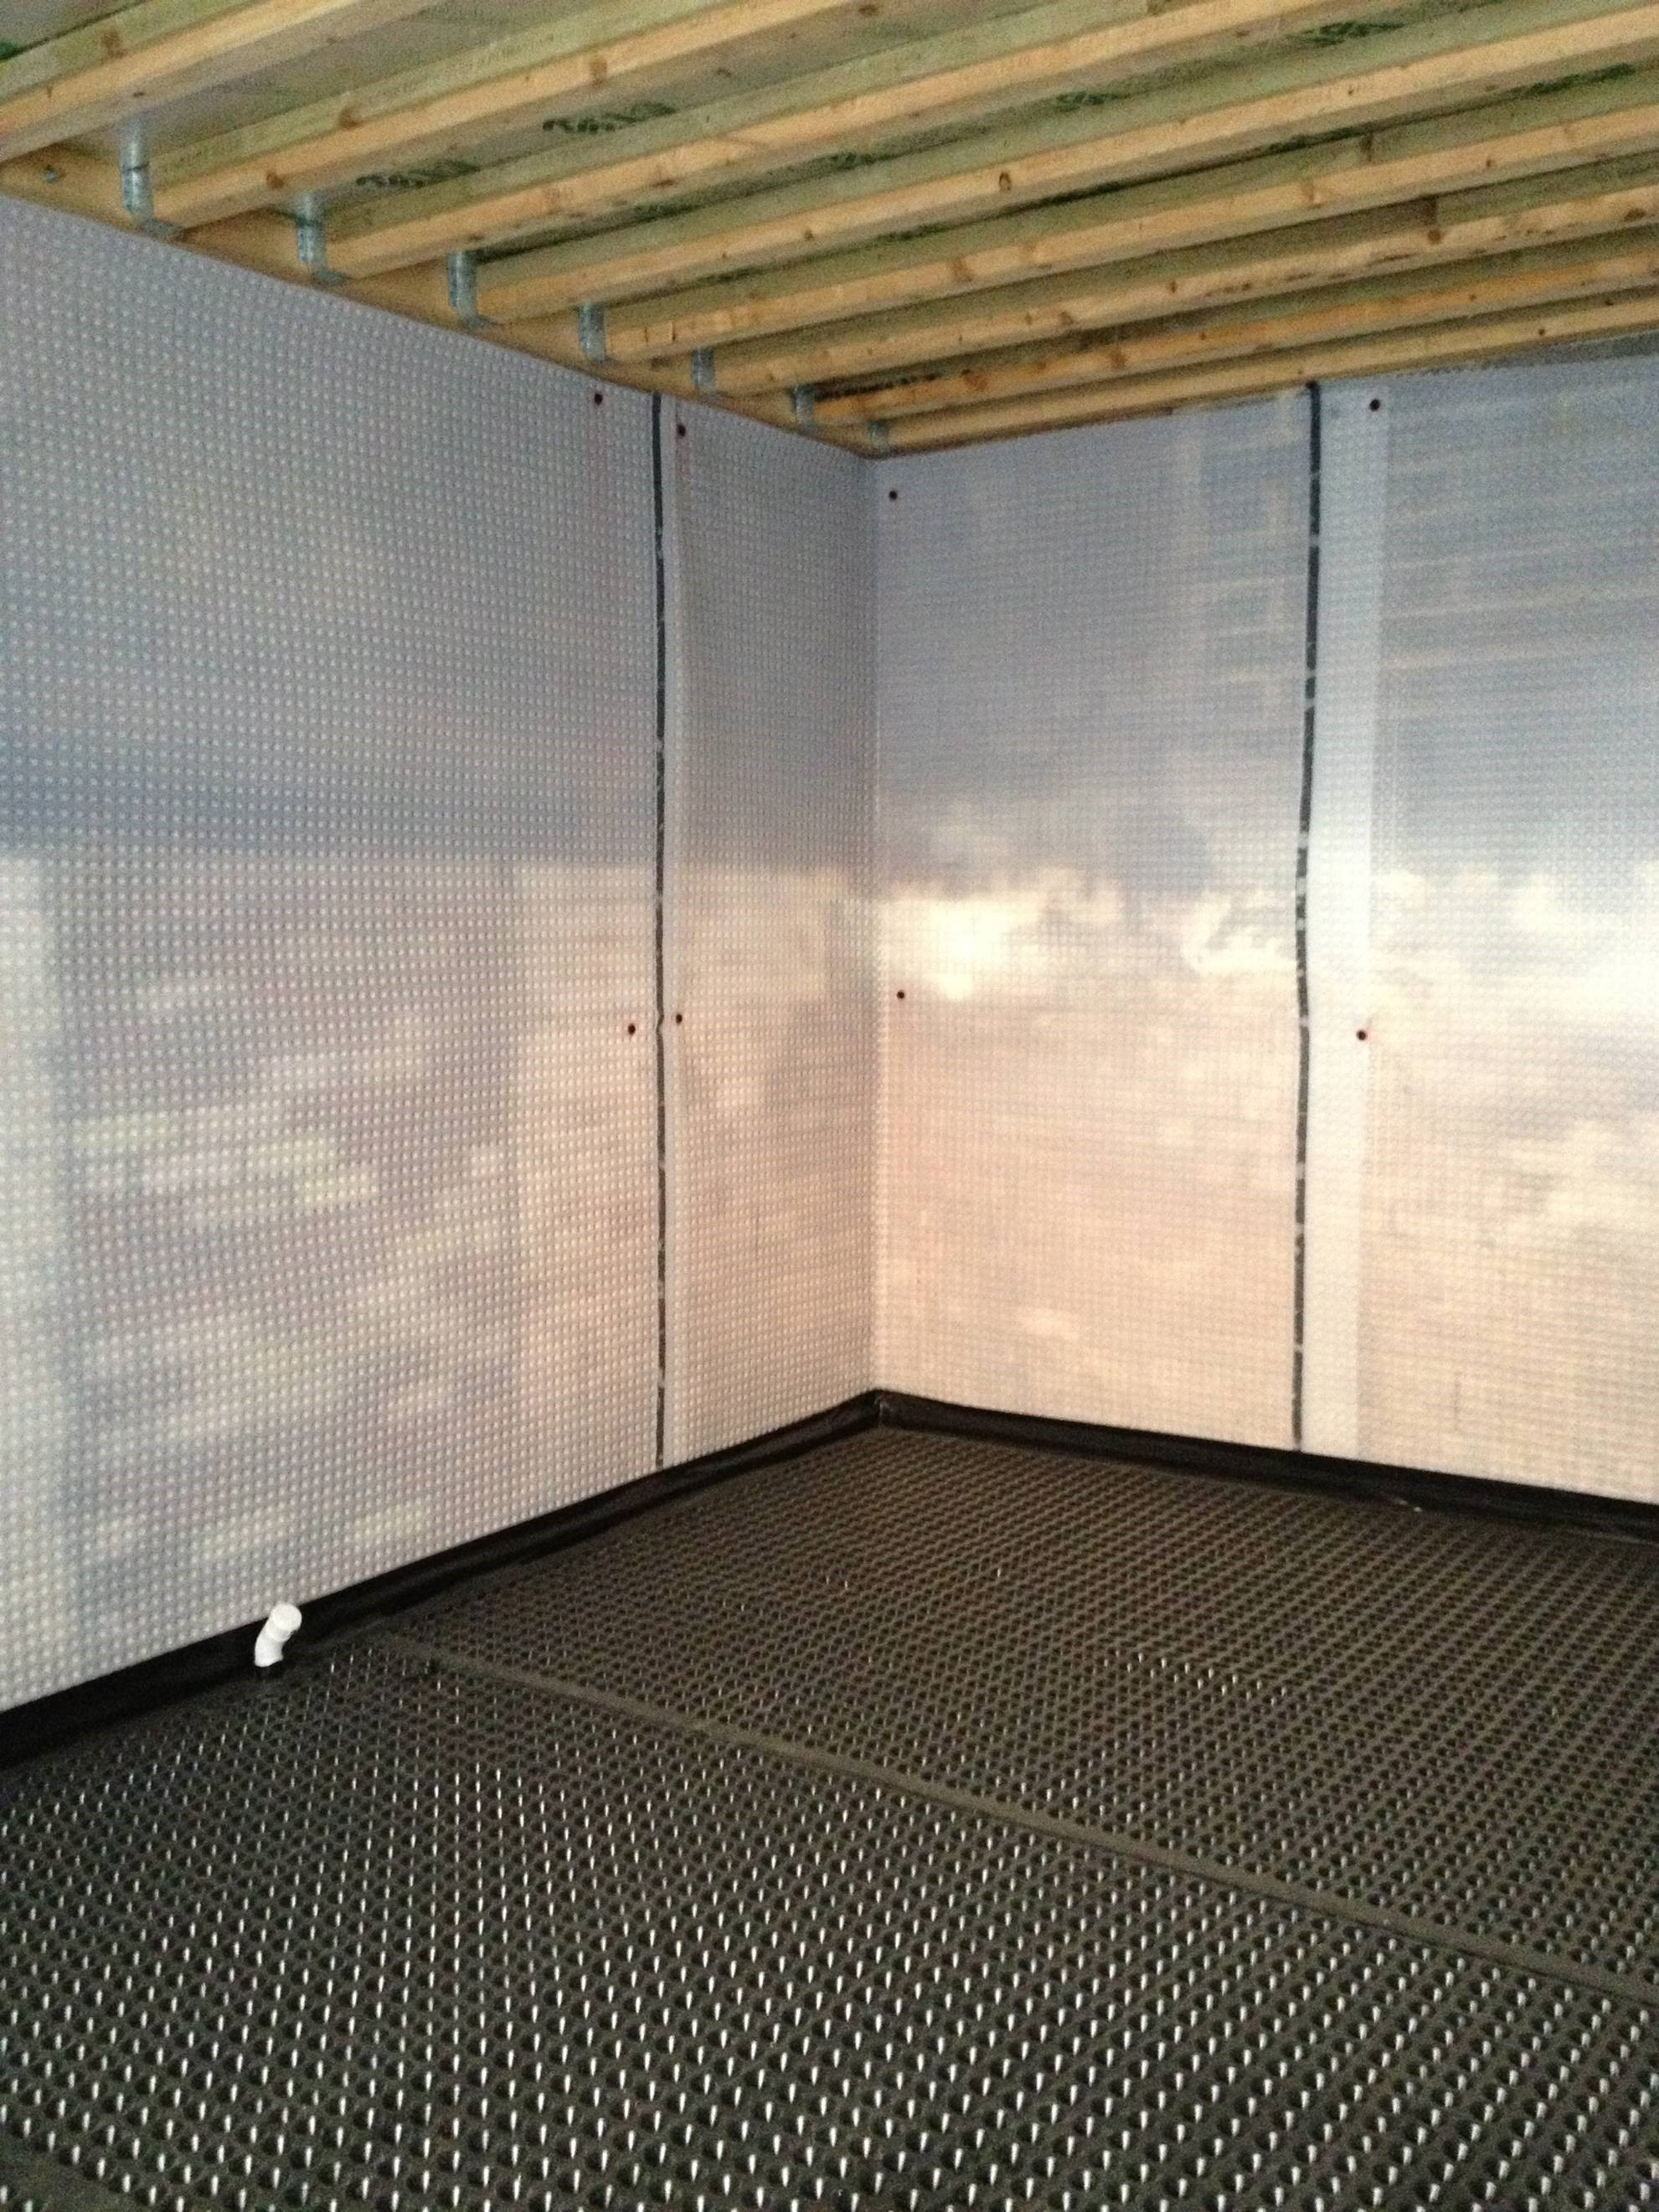 Wall and floor basement tanking membrane & Basement Membranes | Egg-Box Membranes | Dimpled Membranes ...